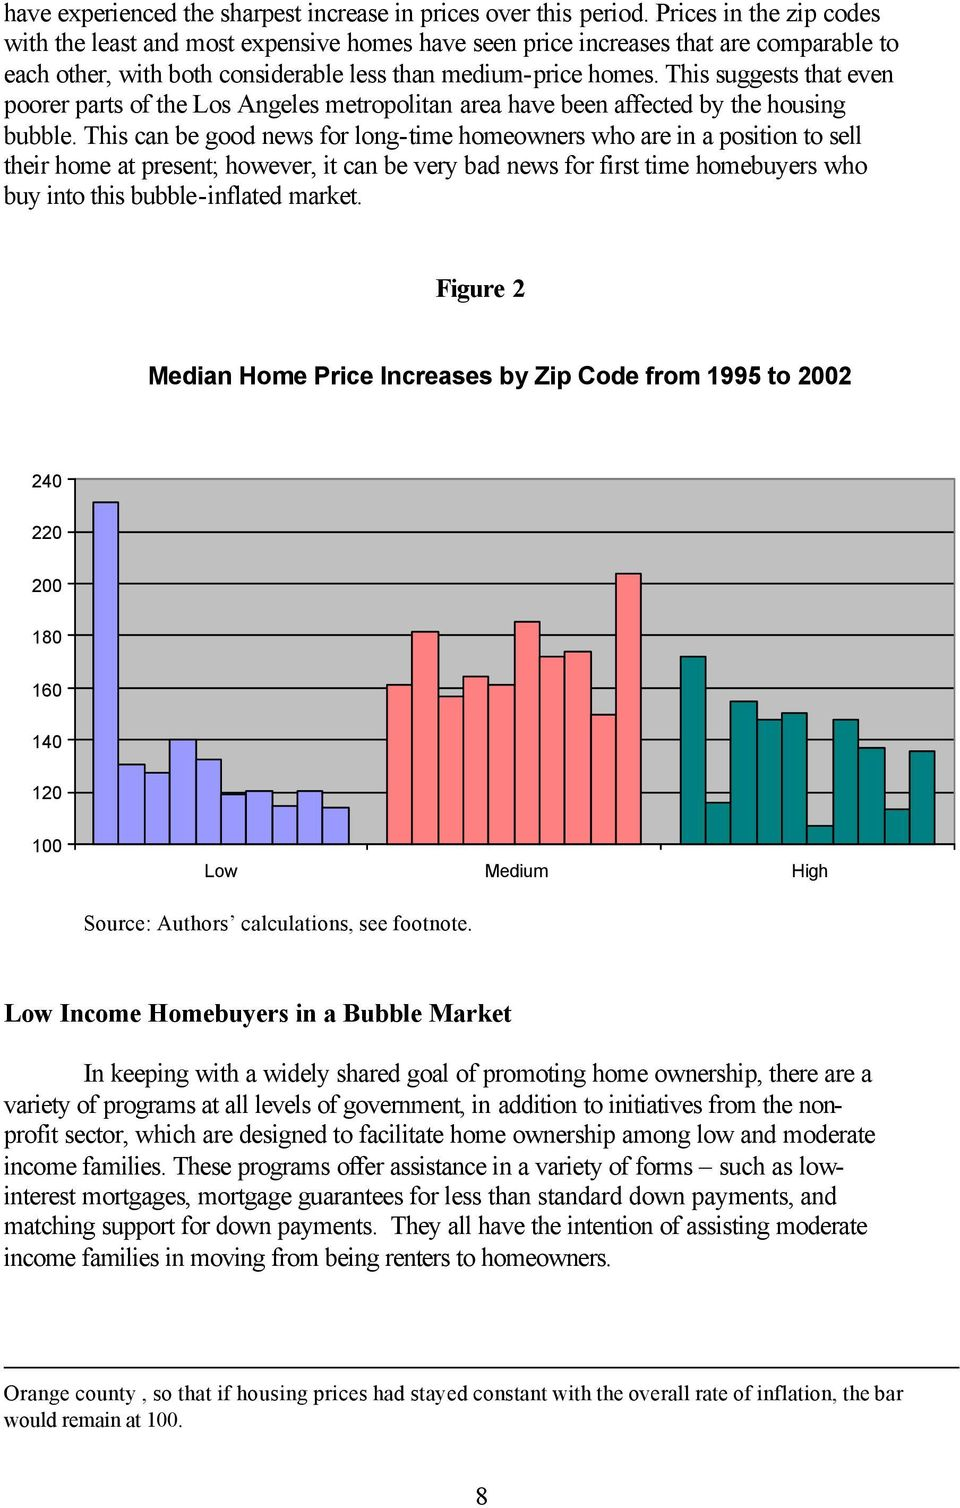 This suggests that even poorer parts of the Los Angeles metropolitan area have been affected by the housing bubble.